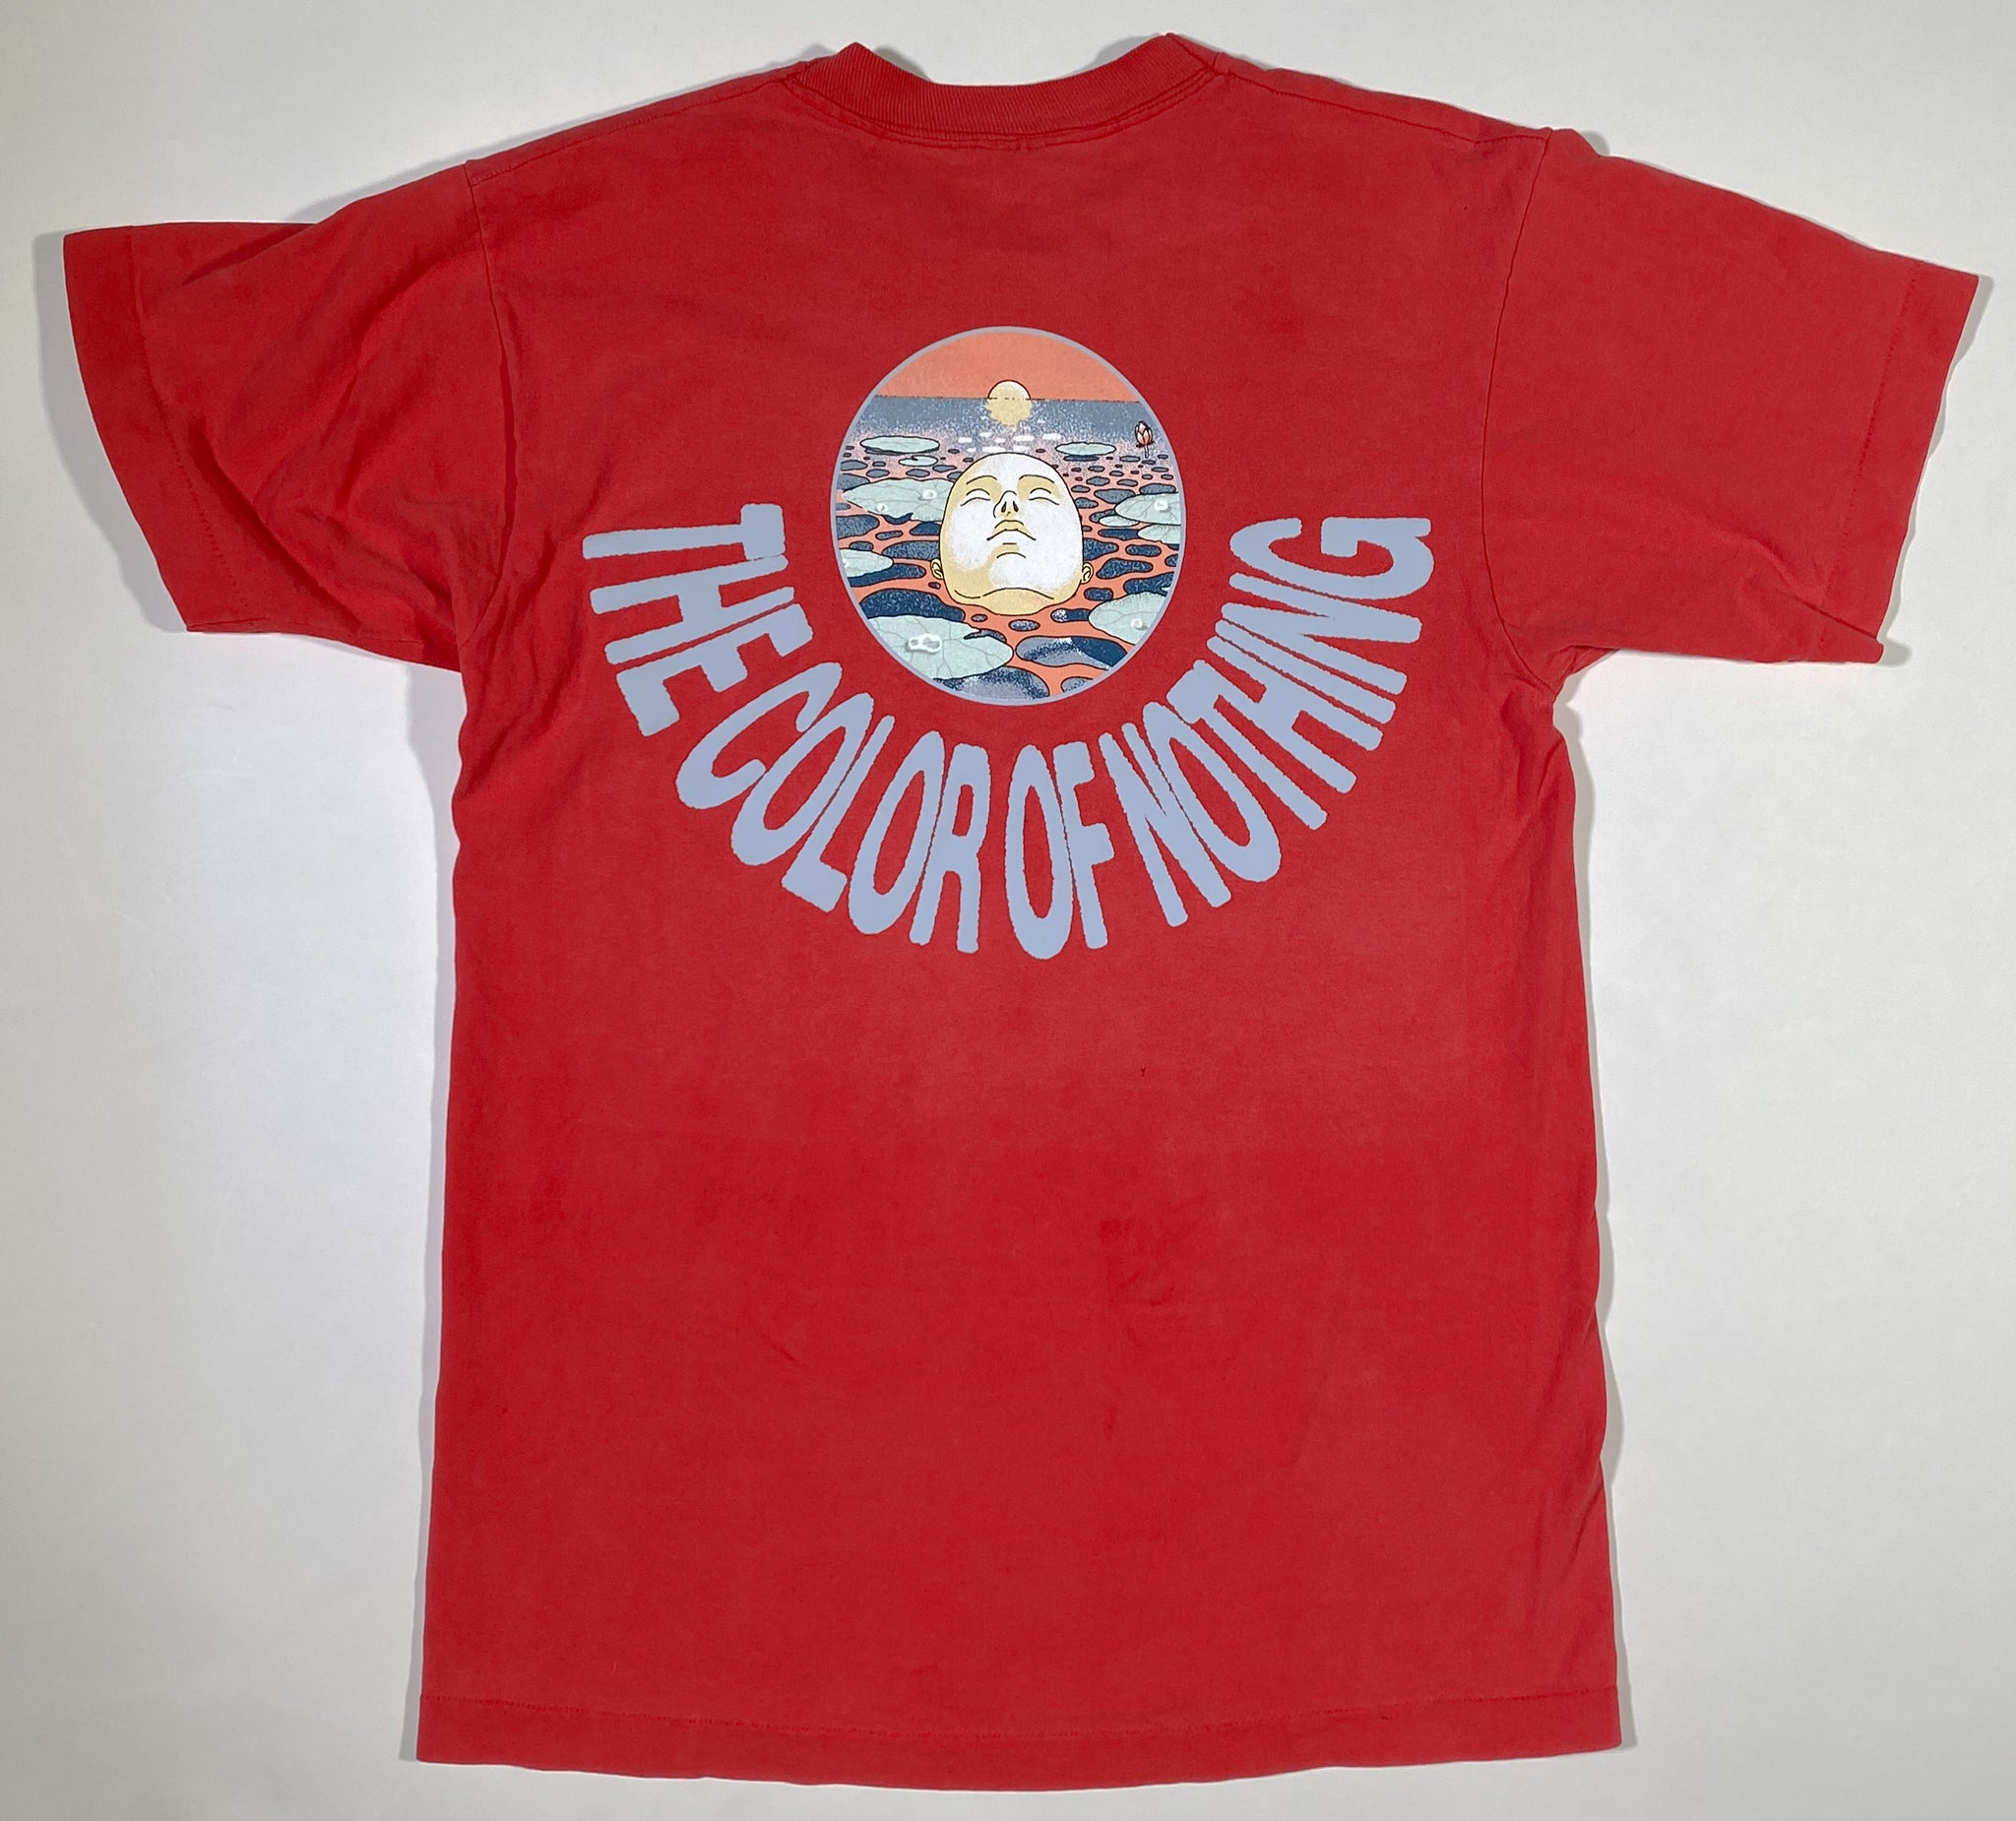 Vintage TCON Red FOTL Tee - Fits M